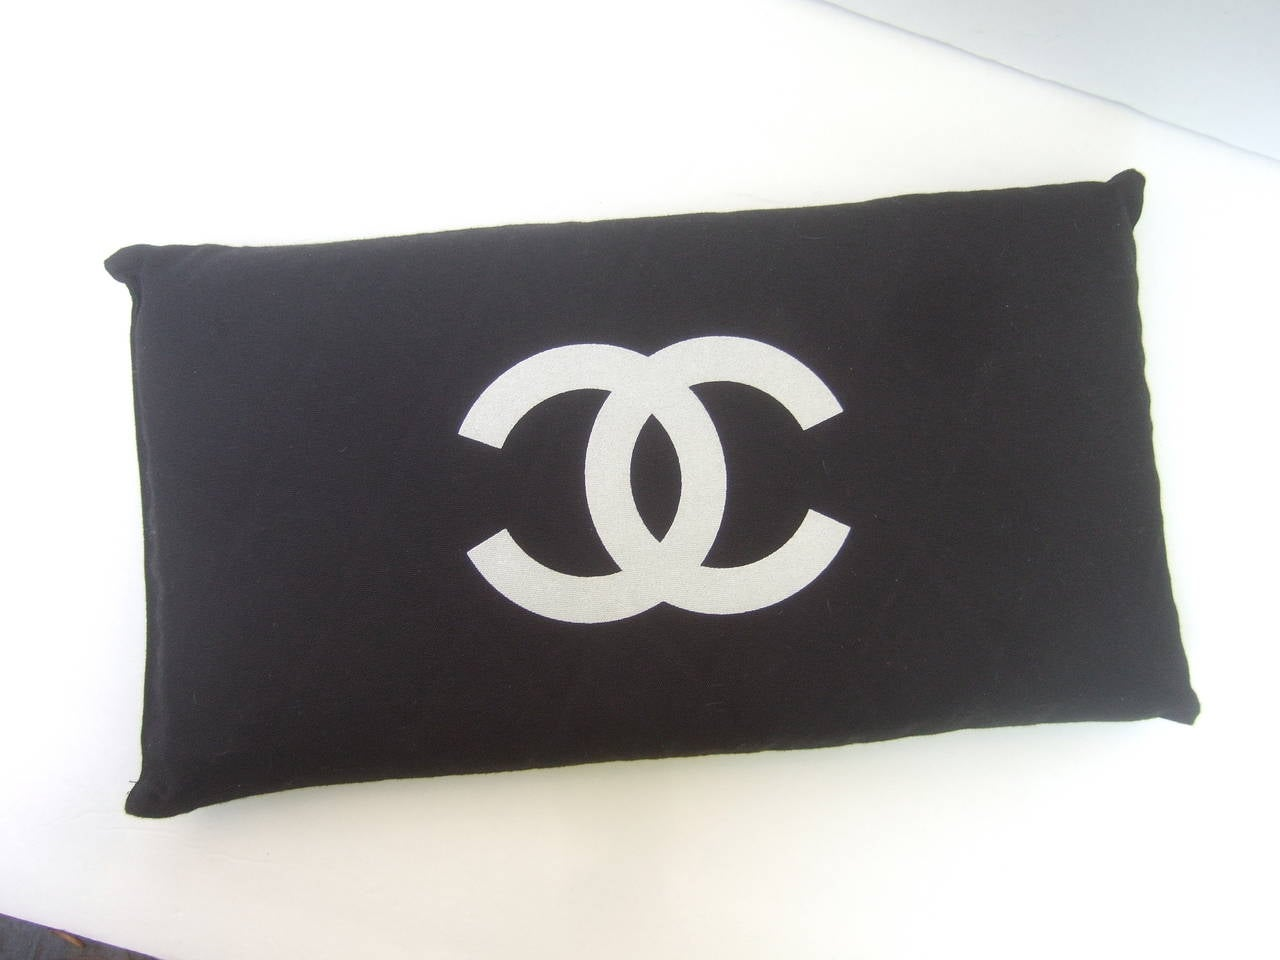 Chanel Black Rectangular Cloth Pillow At 1stdibs